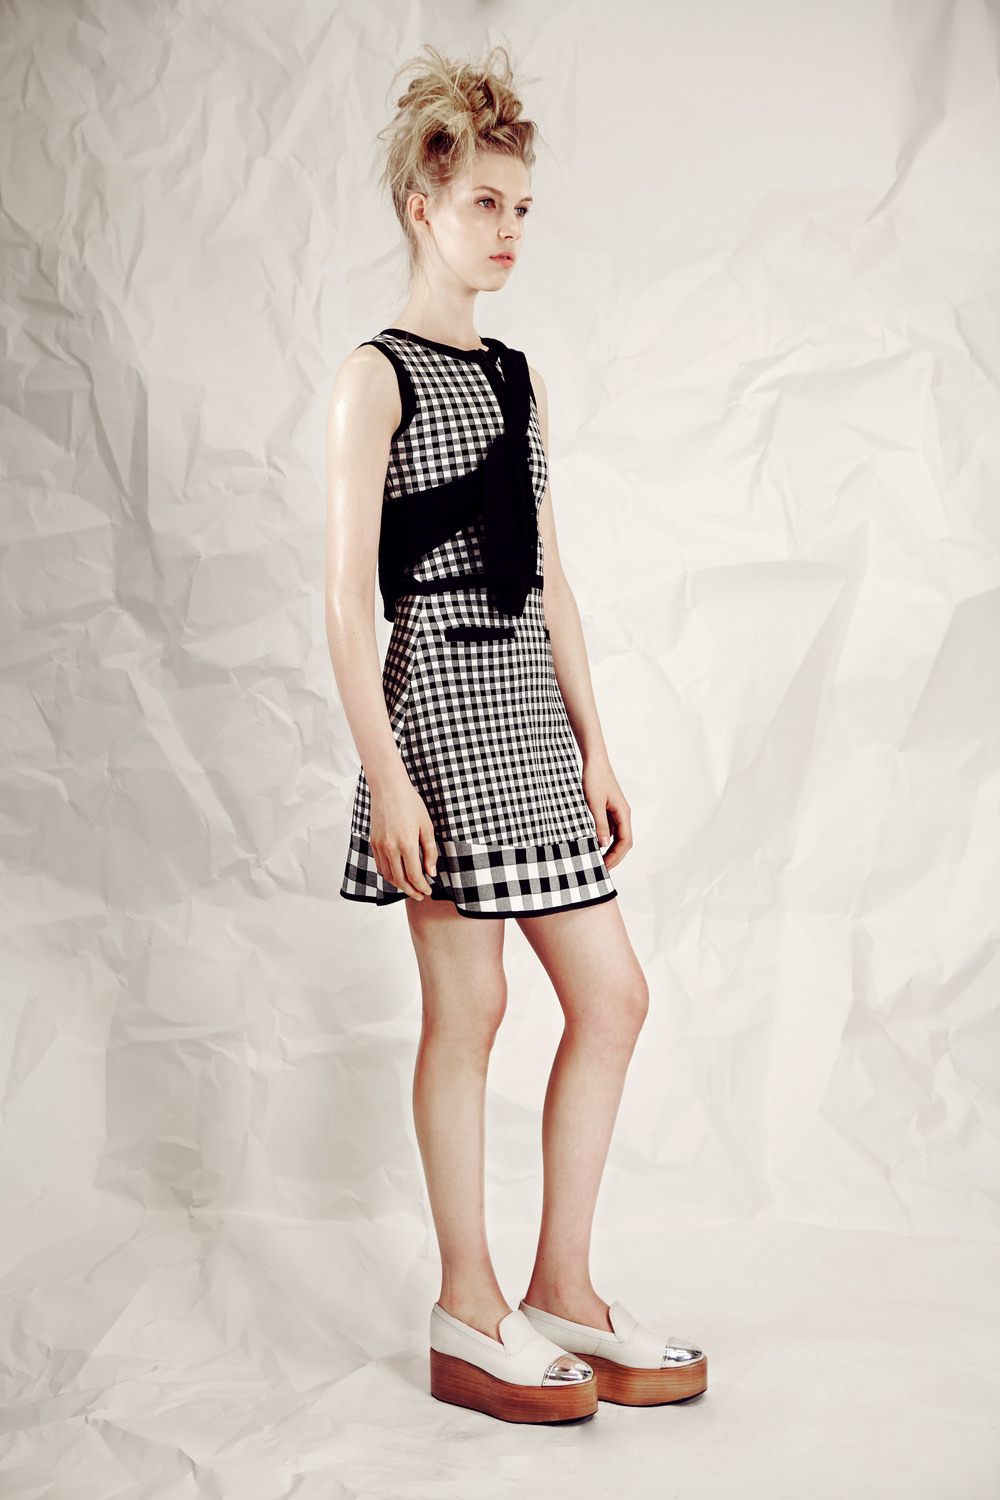 TIMO WEILAND RESORT 15 LOOK 5.jpg